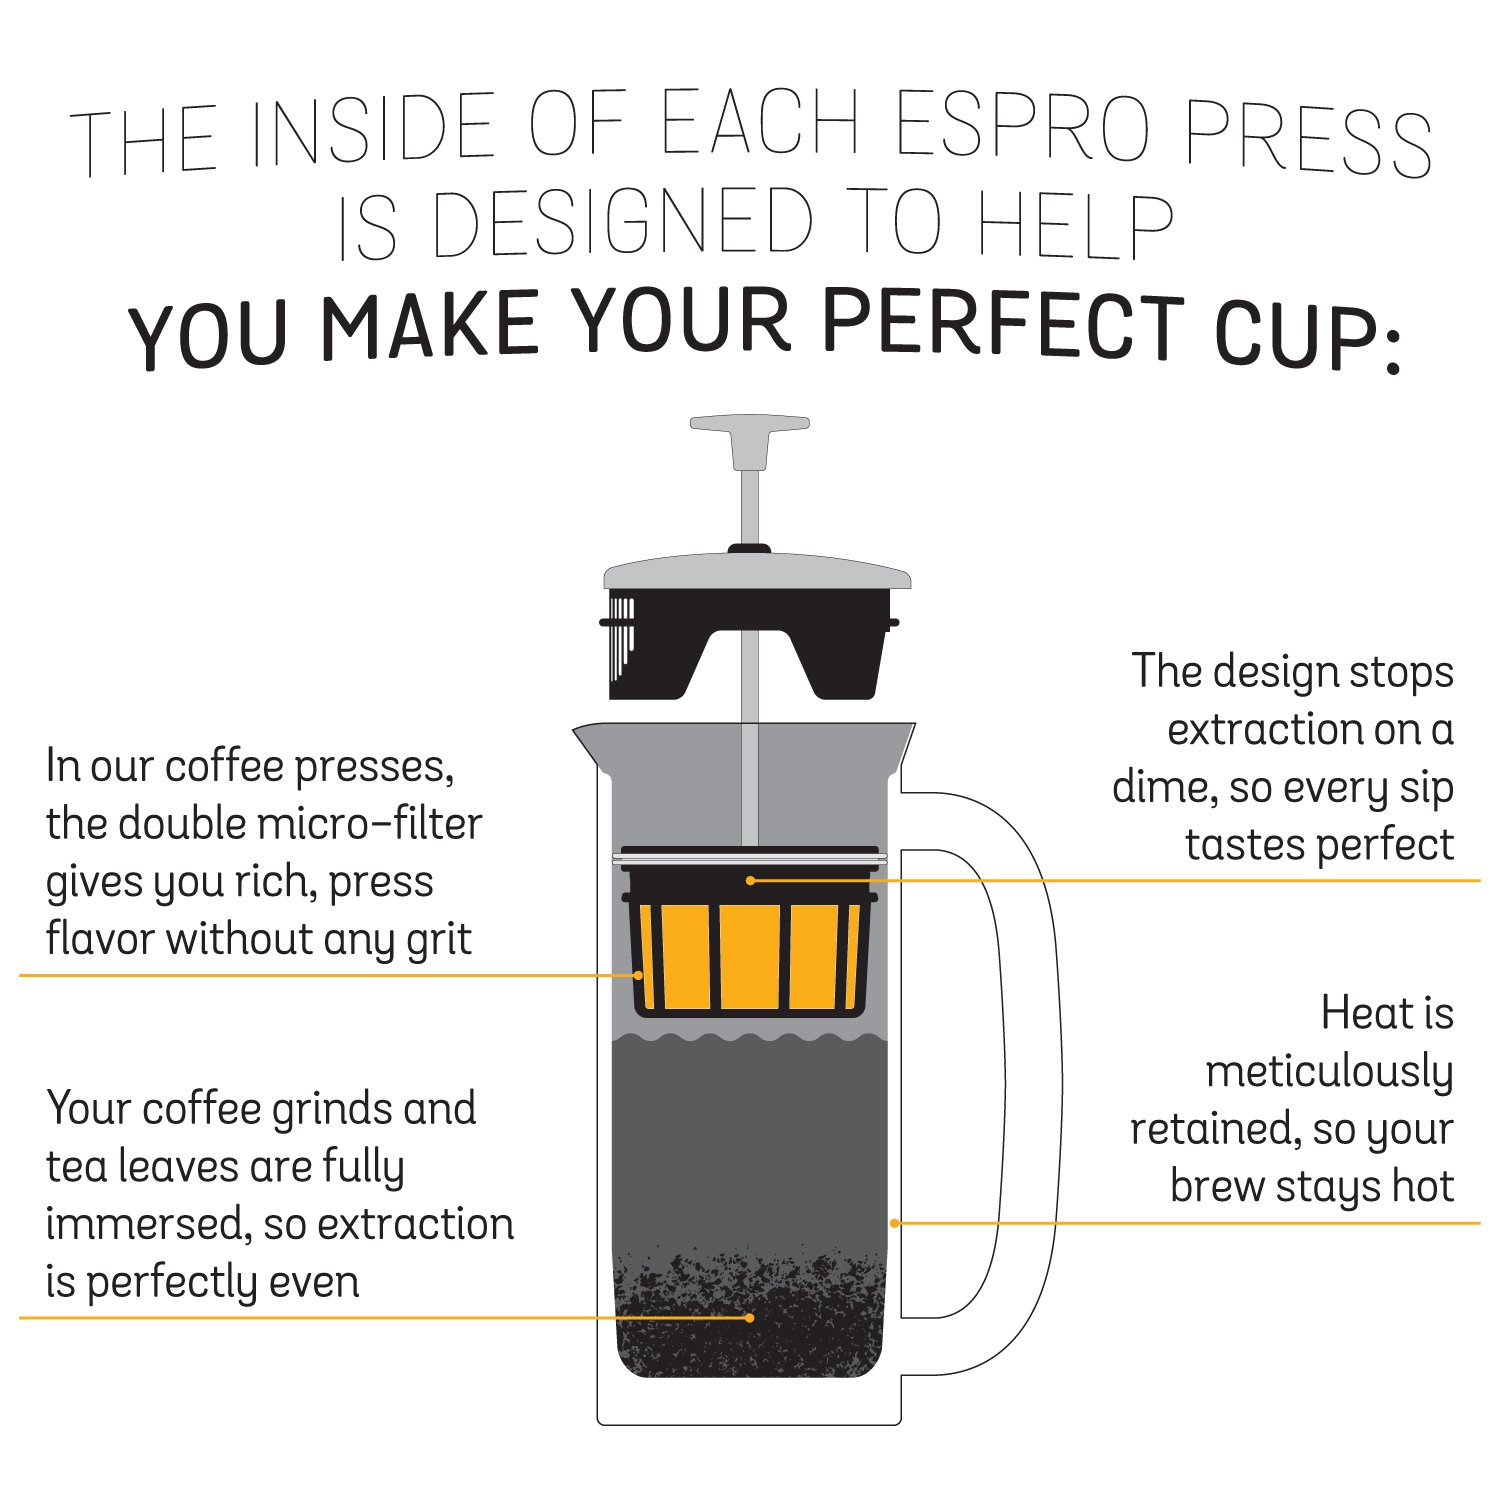 Espro 1132C2-FFP P7 Coffee French Press, 32 Ounce, Brushed Stainless Steel by Espro (Image #5)